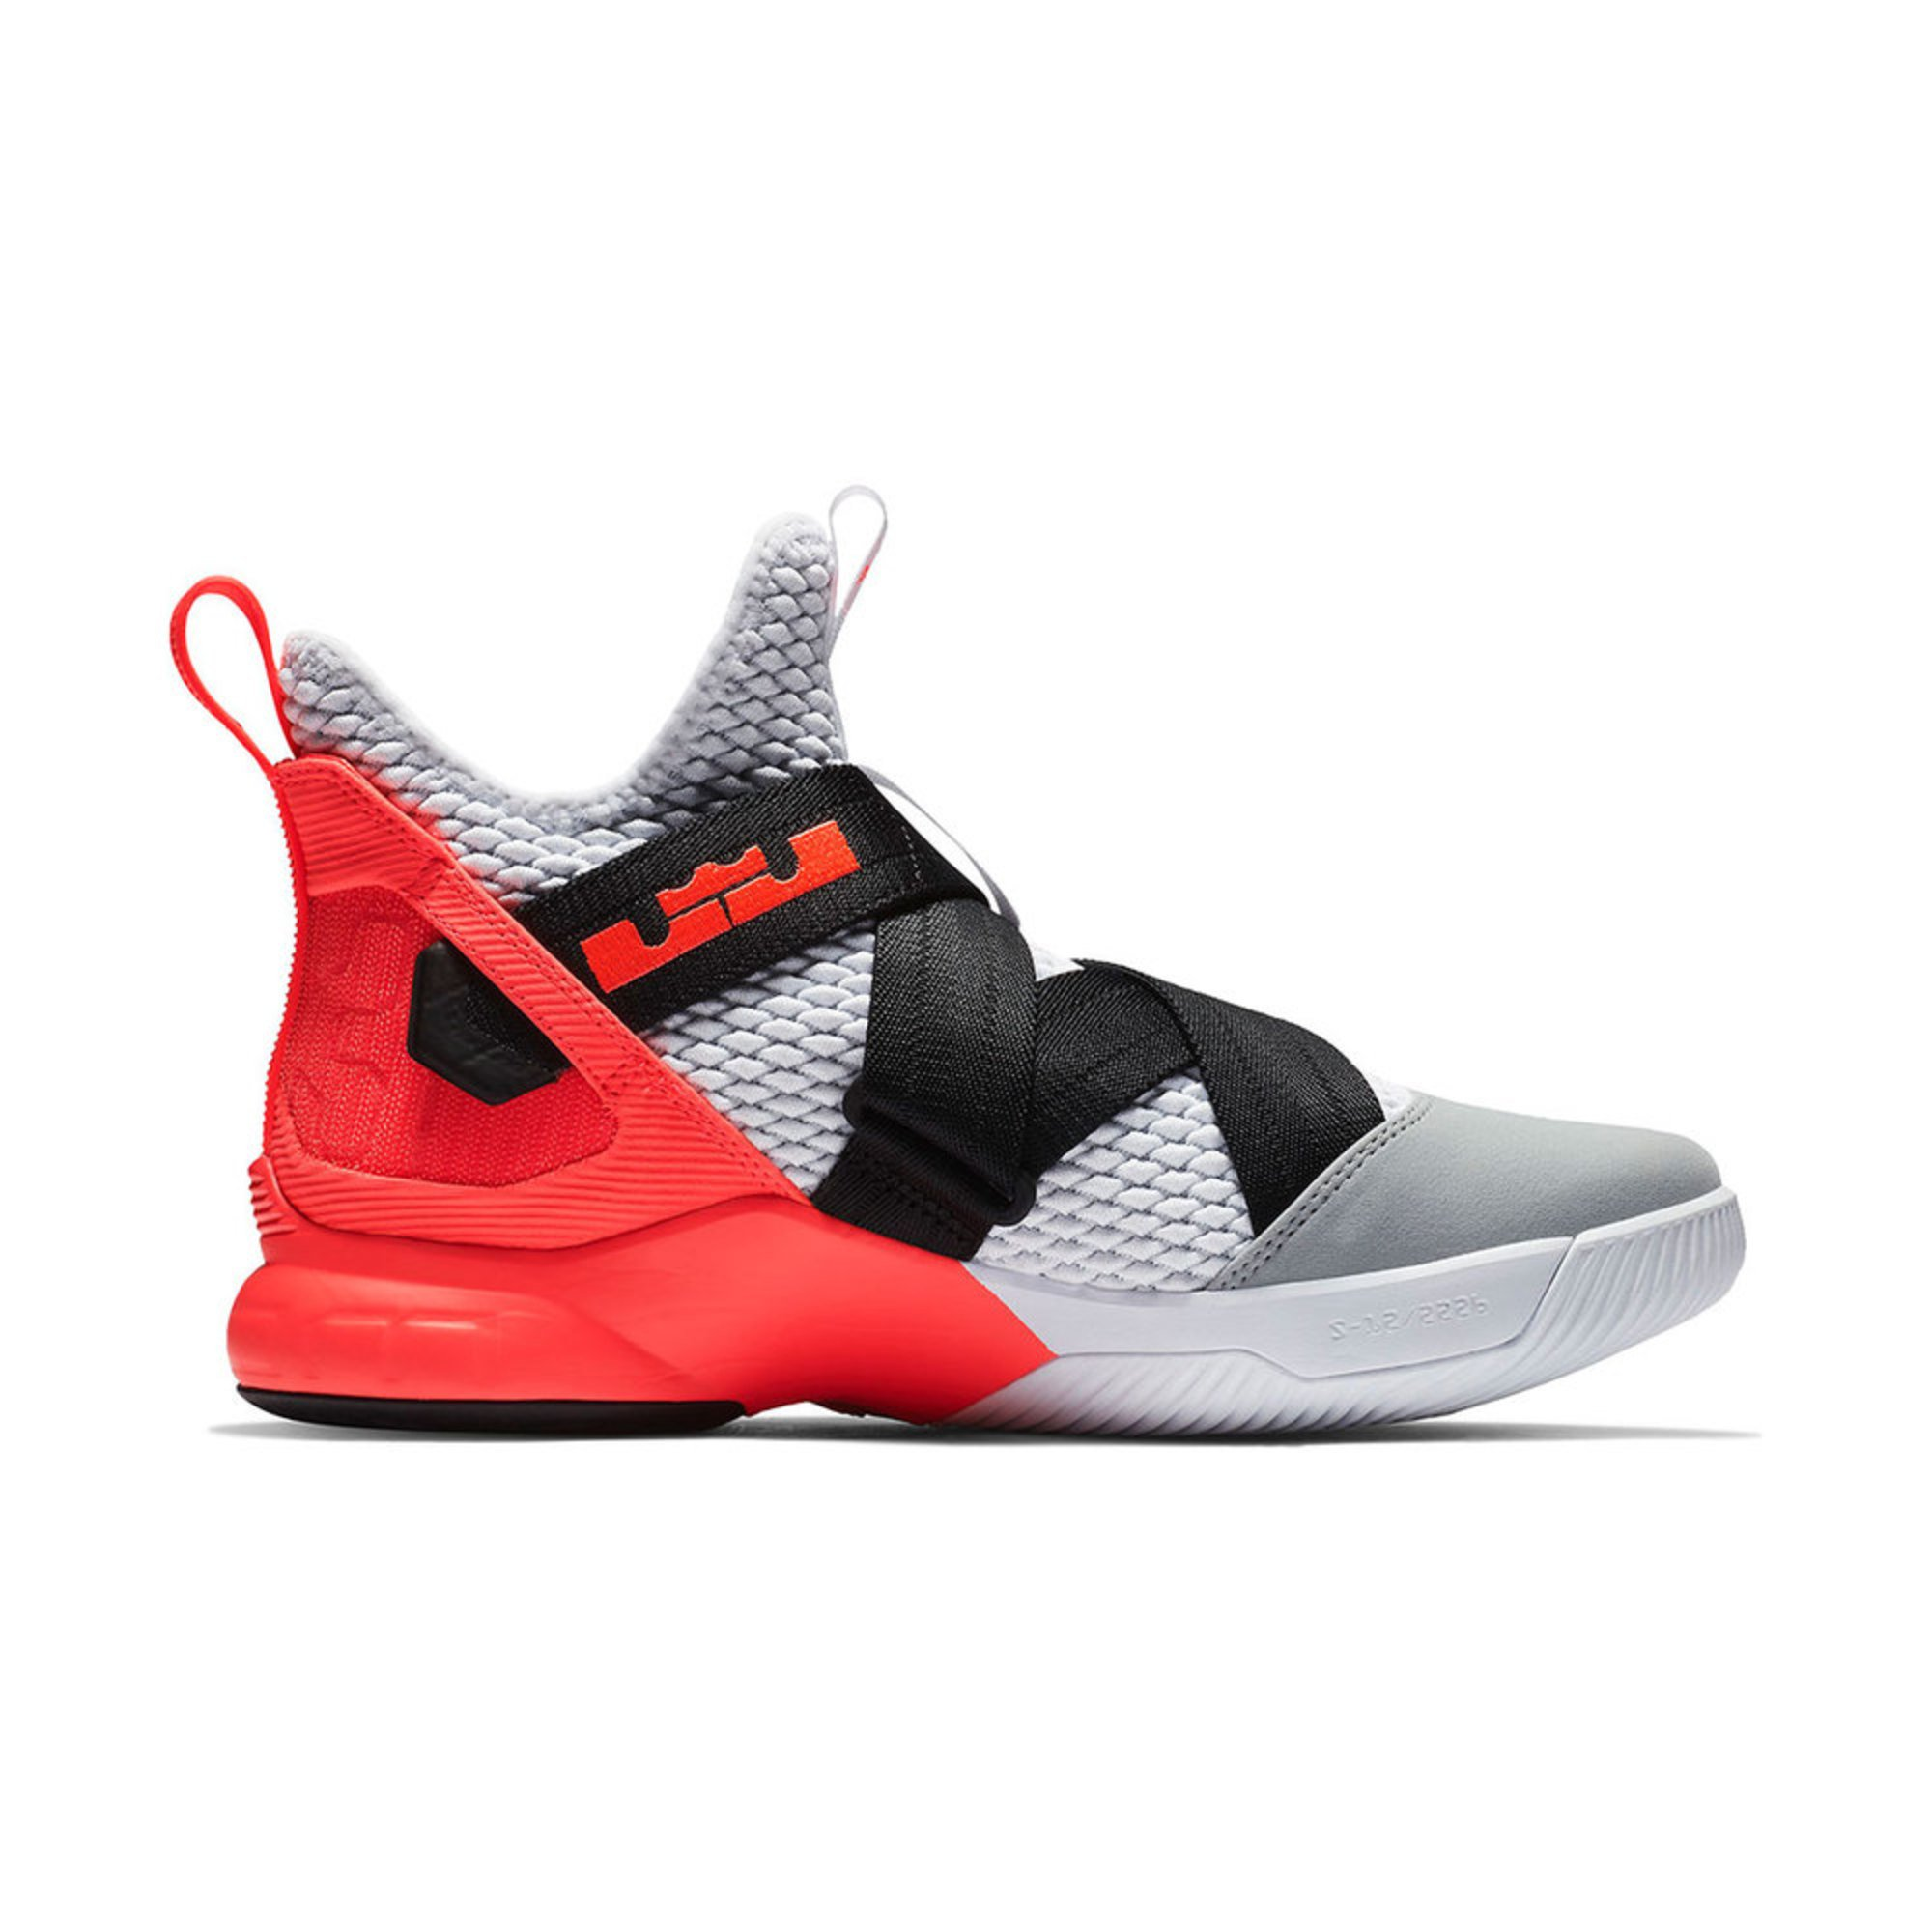 sale retailer 23687 5dbc2 Nike. Nike Men s LeBron Soldier XII SFG Basketball Shoe